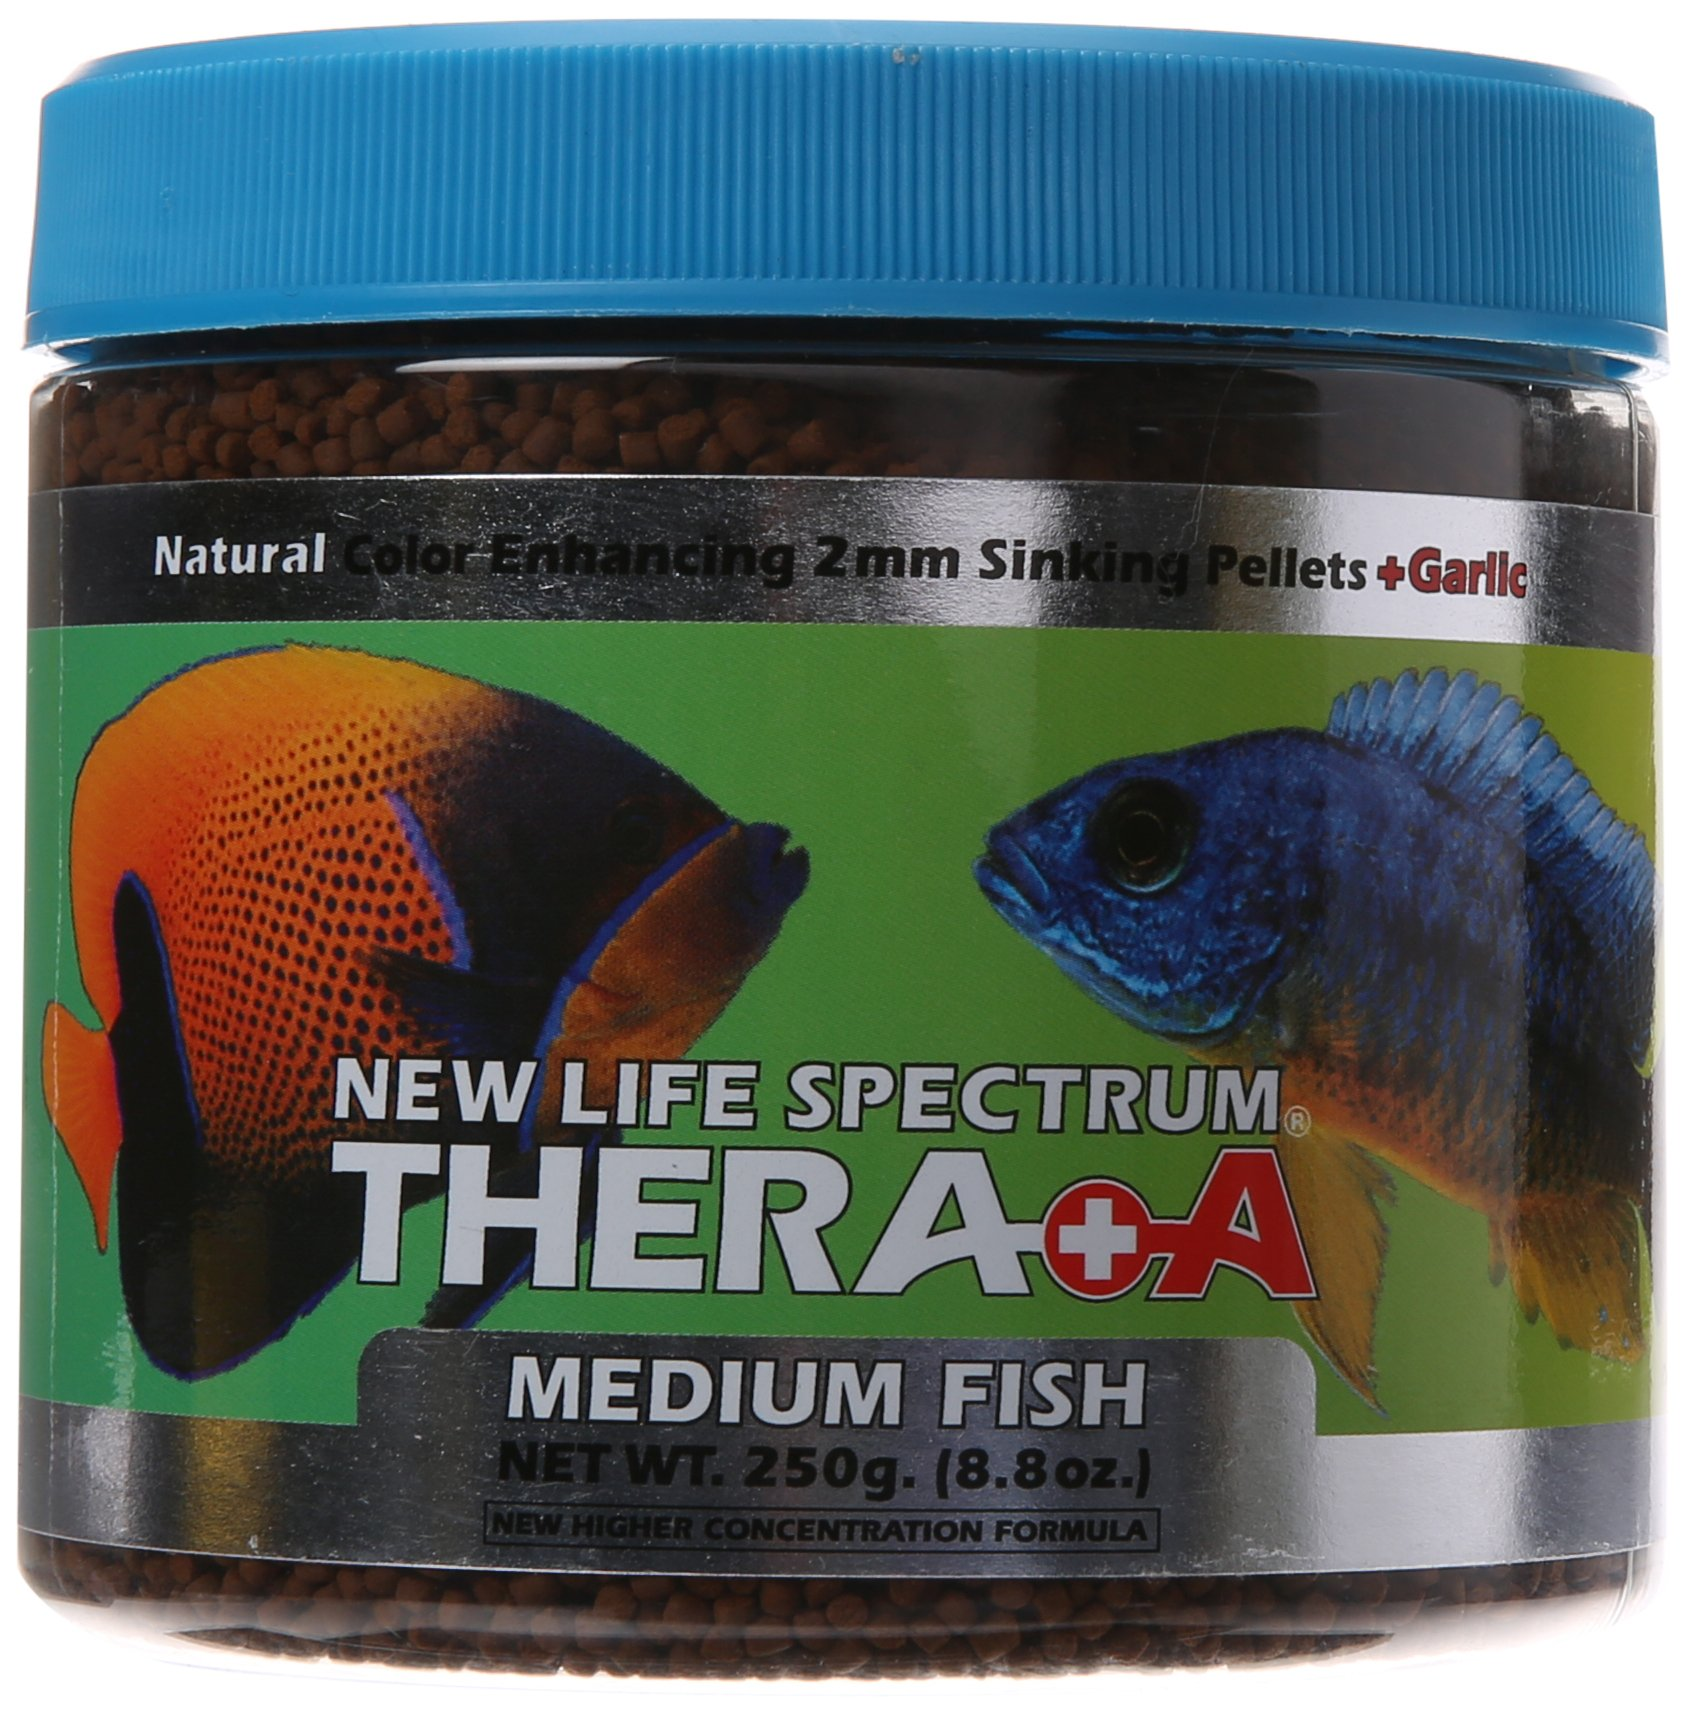 New Life Spectrum Thera-A Medium 2mm Sinking Salt/Freshwater Pet Food, 250gm